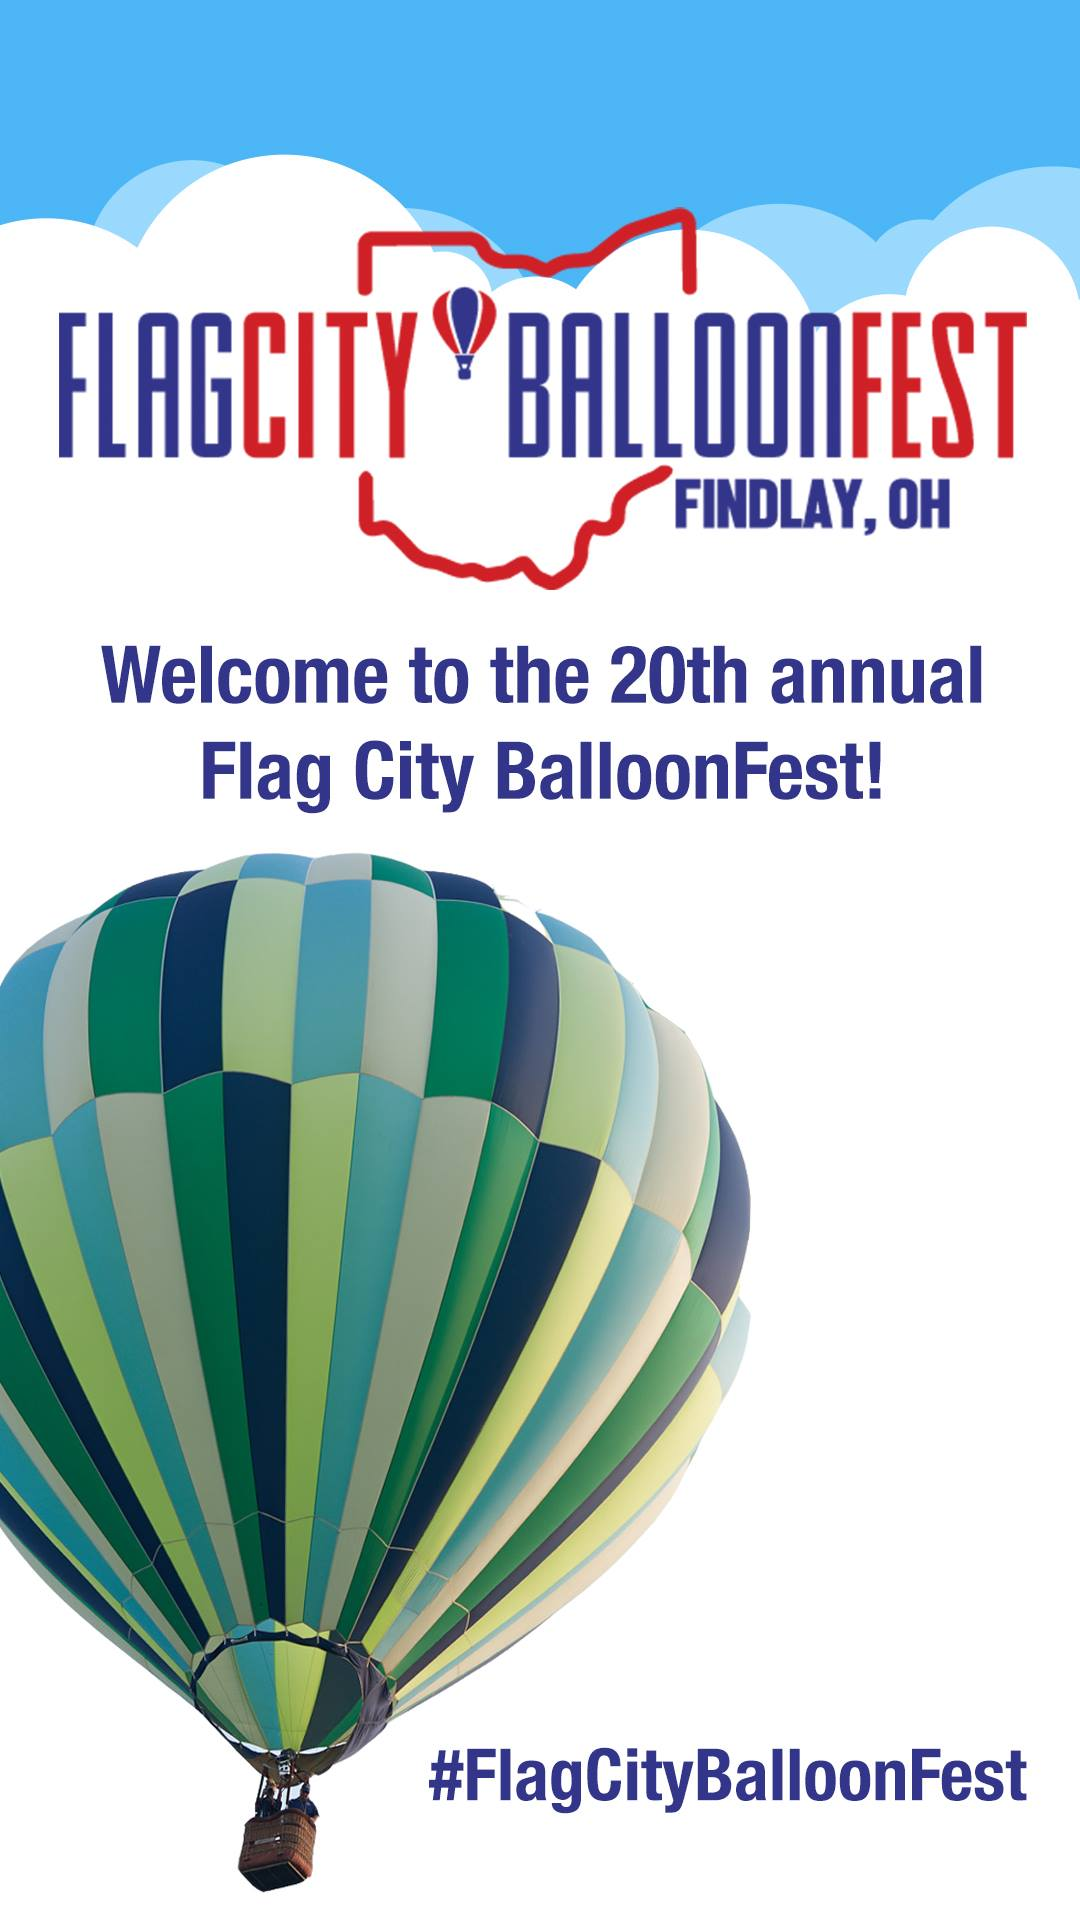 BalloonFest Welcome Ad